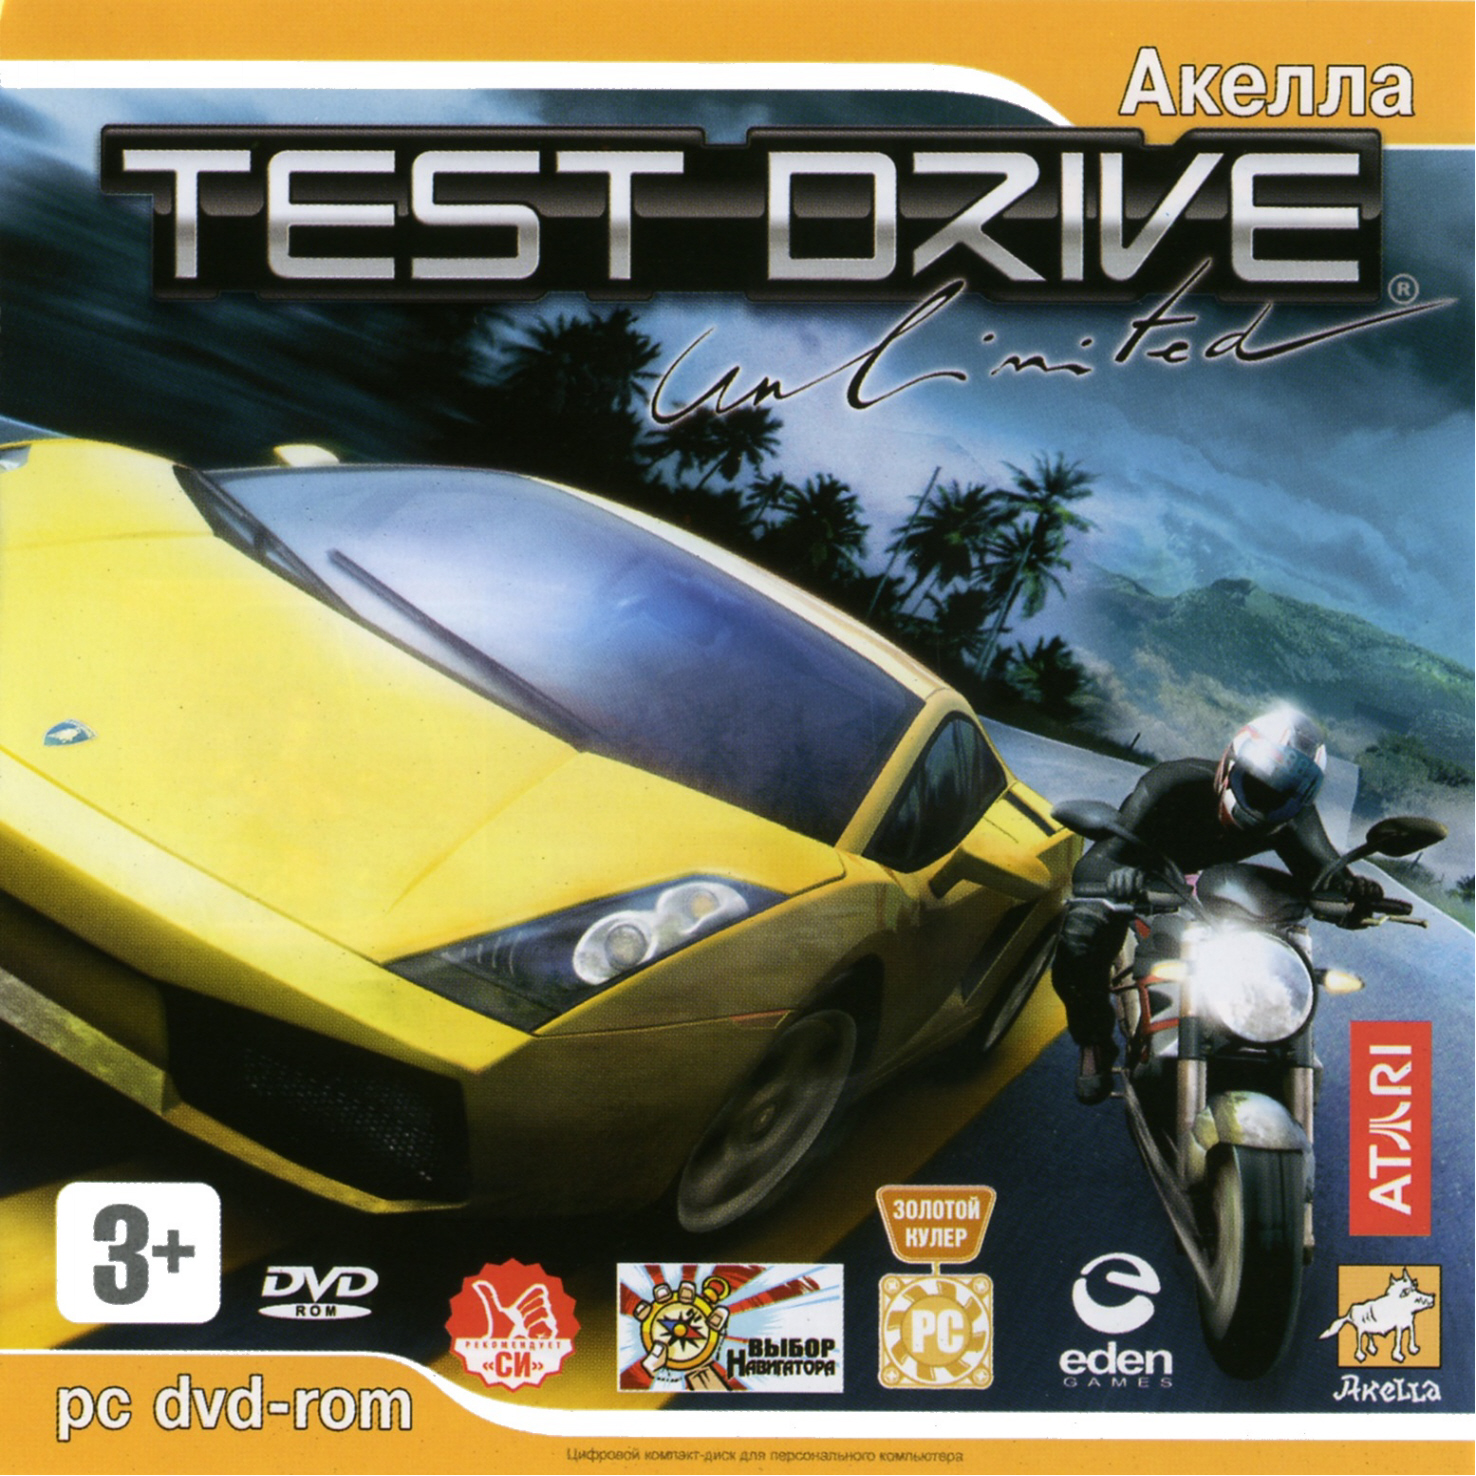 Test drive game porn anime images